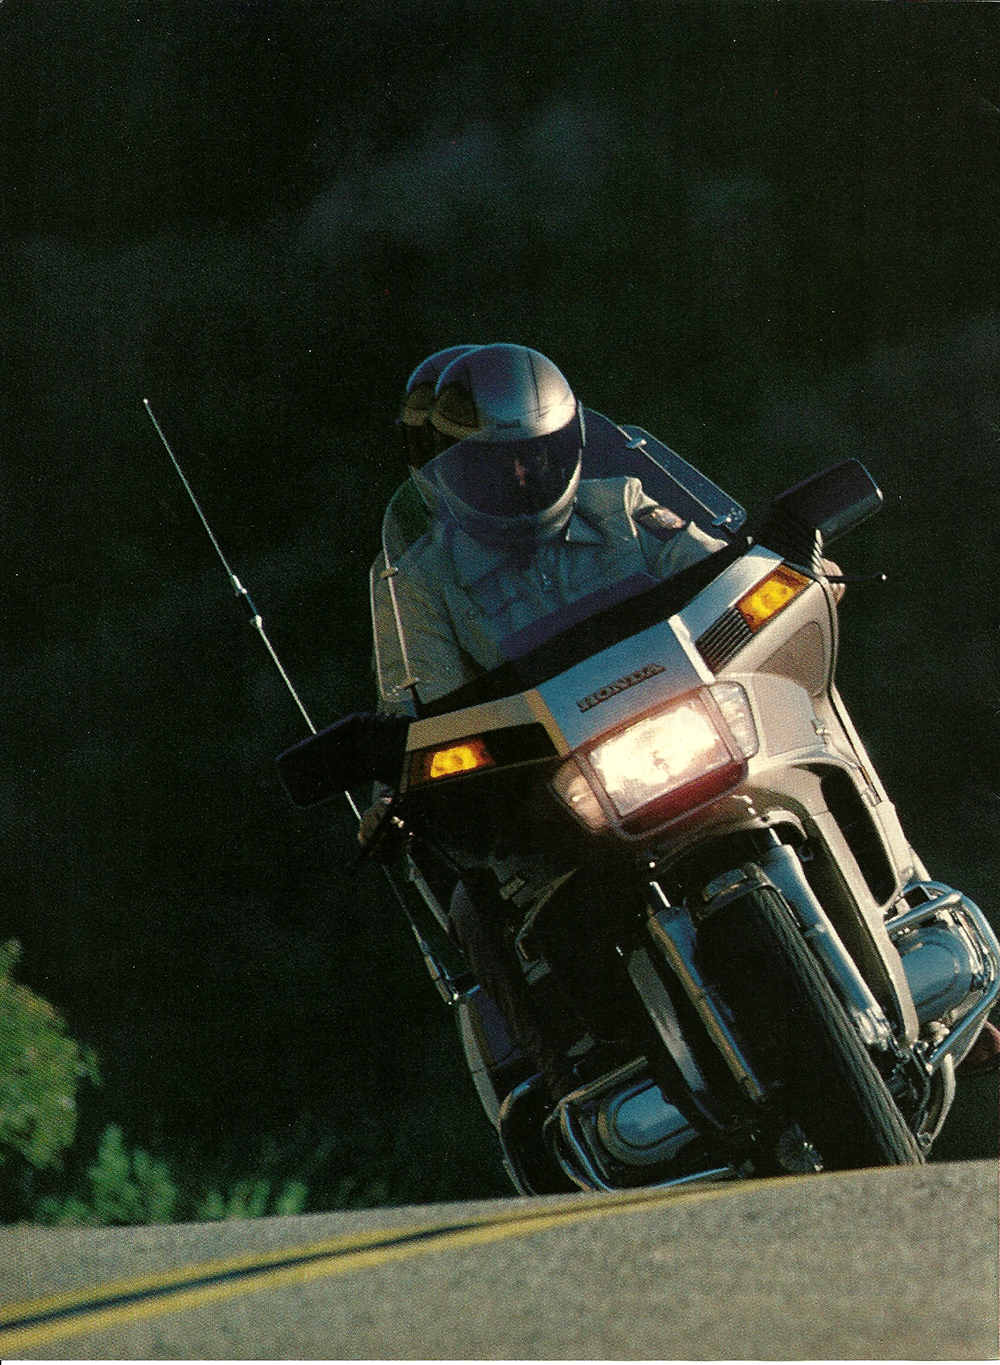 1984 Honda GL1200A Gold Wing Aspencade road test 1.jpg